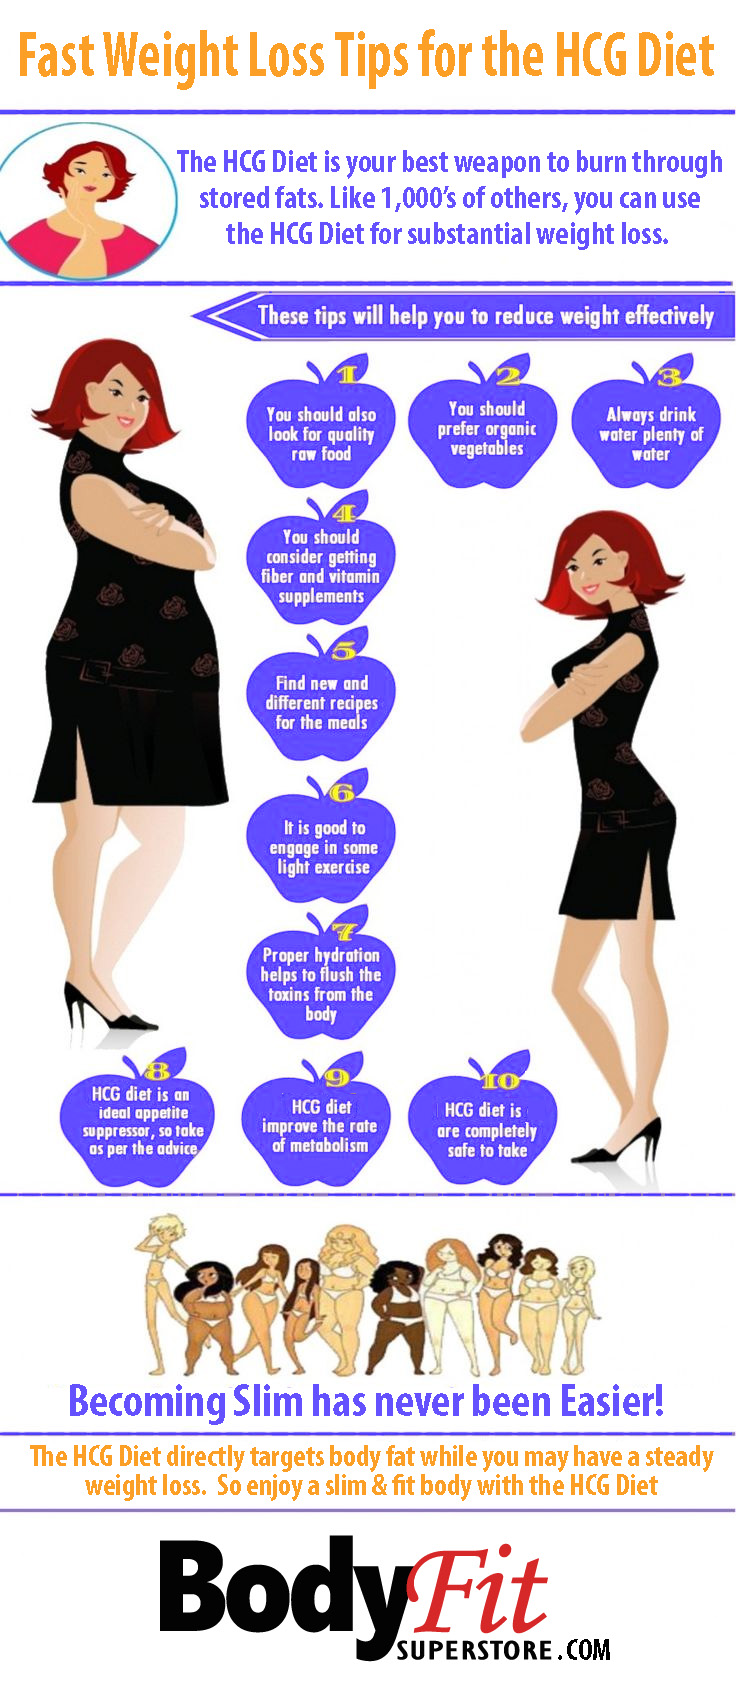 Infographic-Fast-Weight-Loss-Tips-HCG-Diet-BodyFitSuperstore